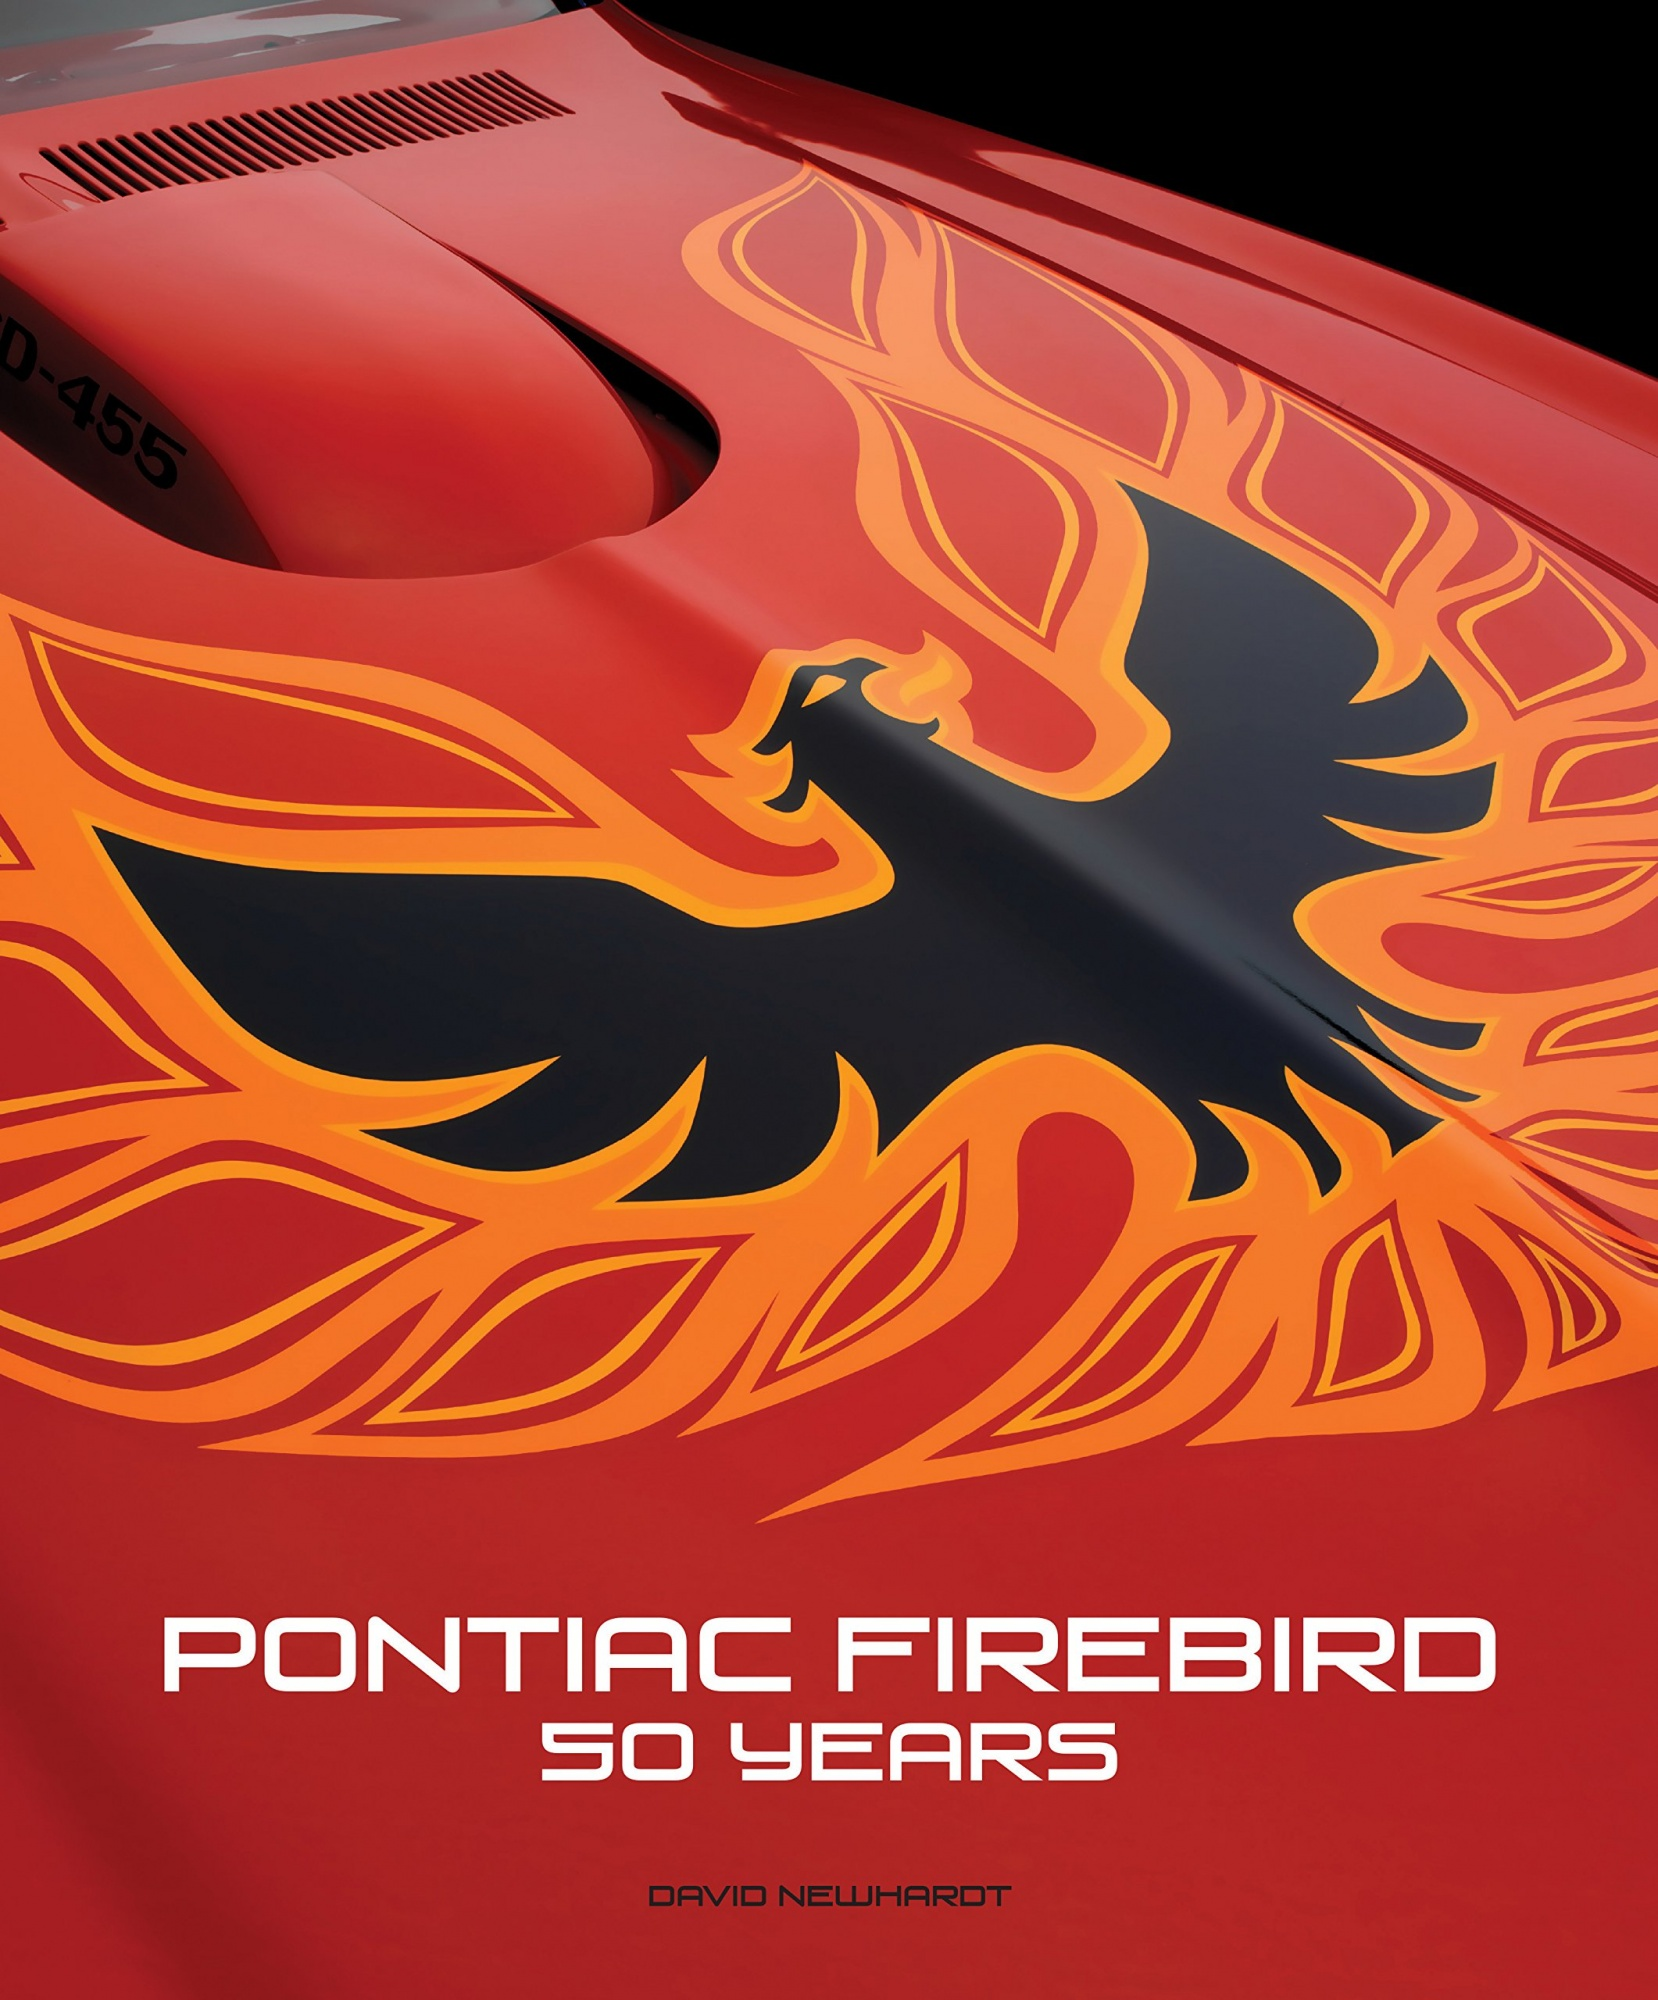 Pontiac Firebird50 Years